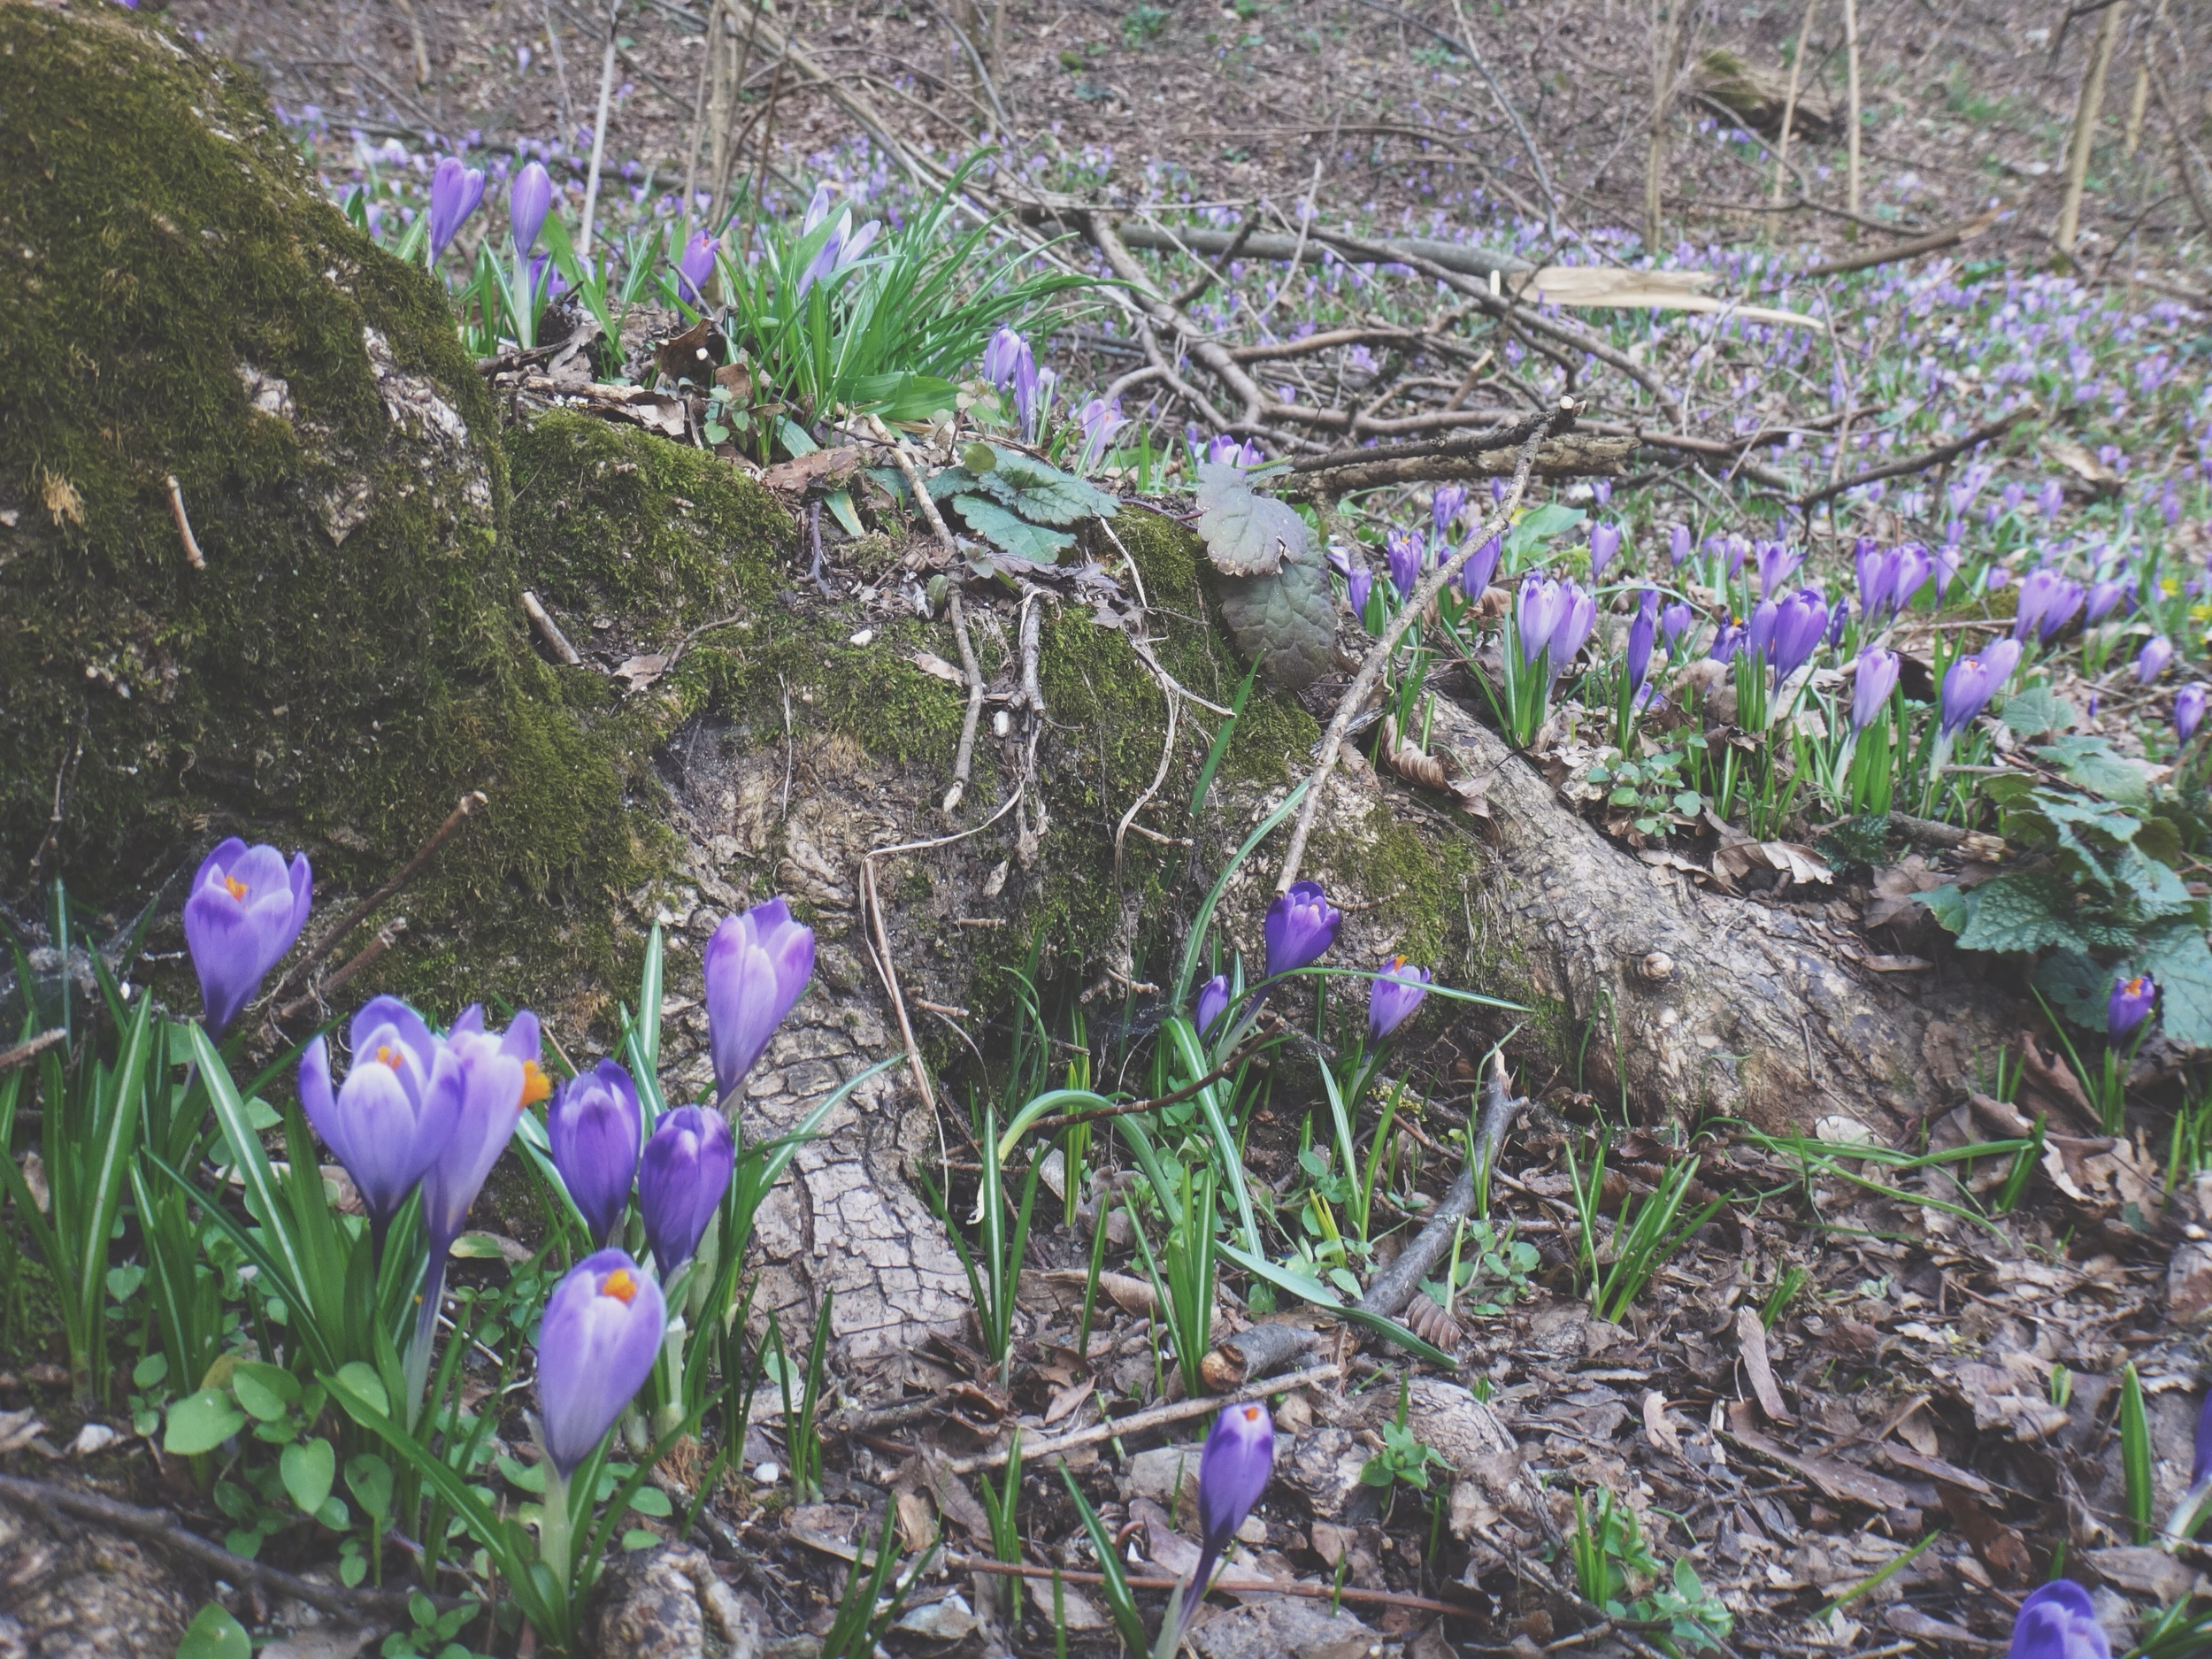 Crocus in Slovenia